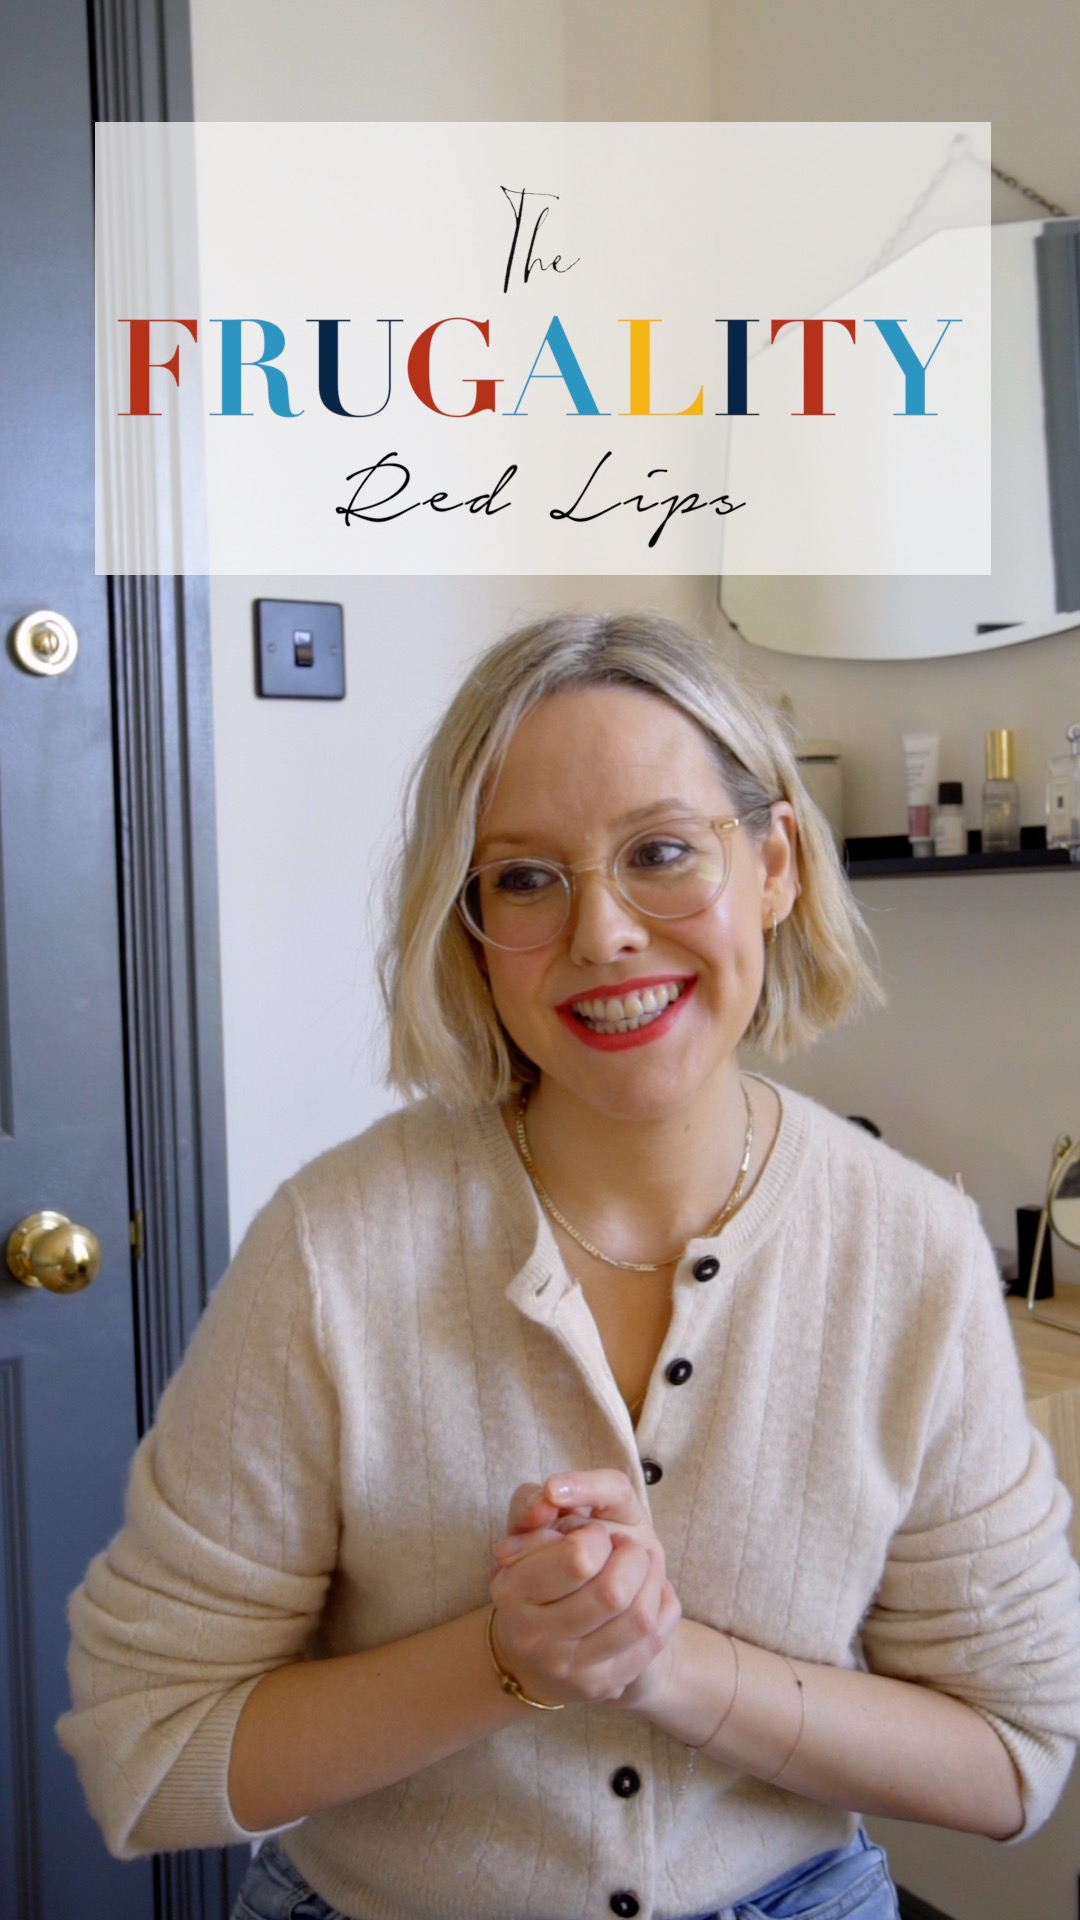 A thumbnail from The Frugality's Red Lip IGTV.